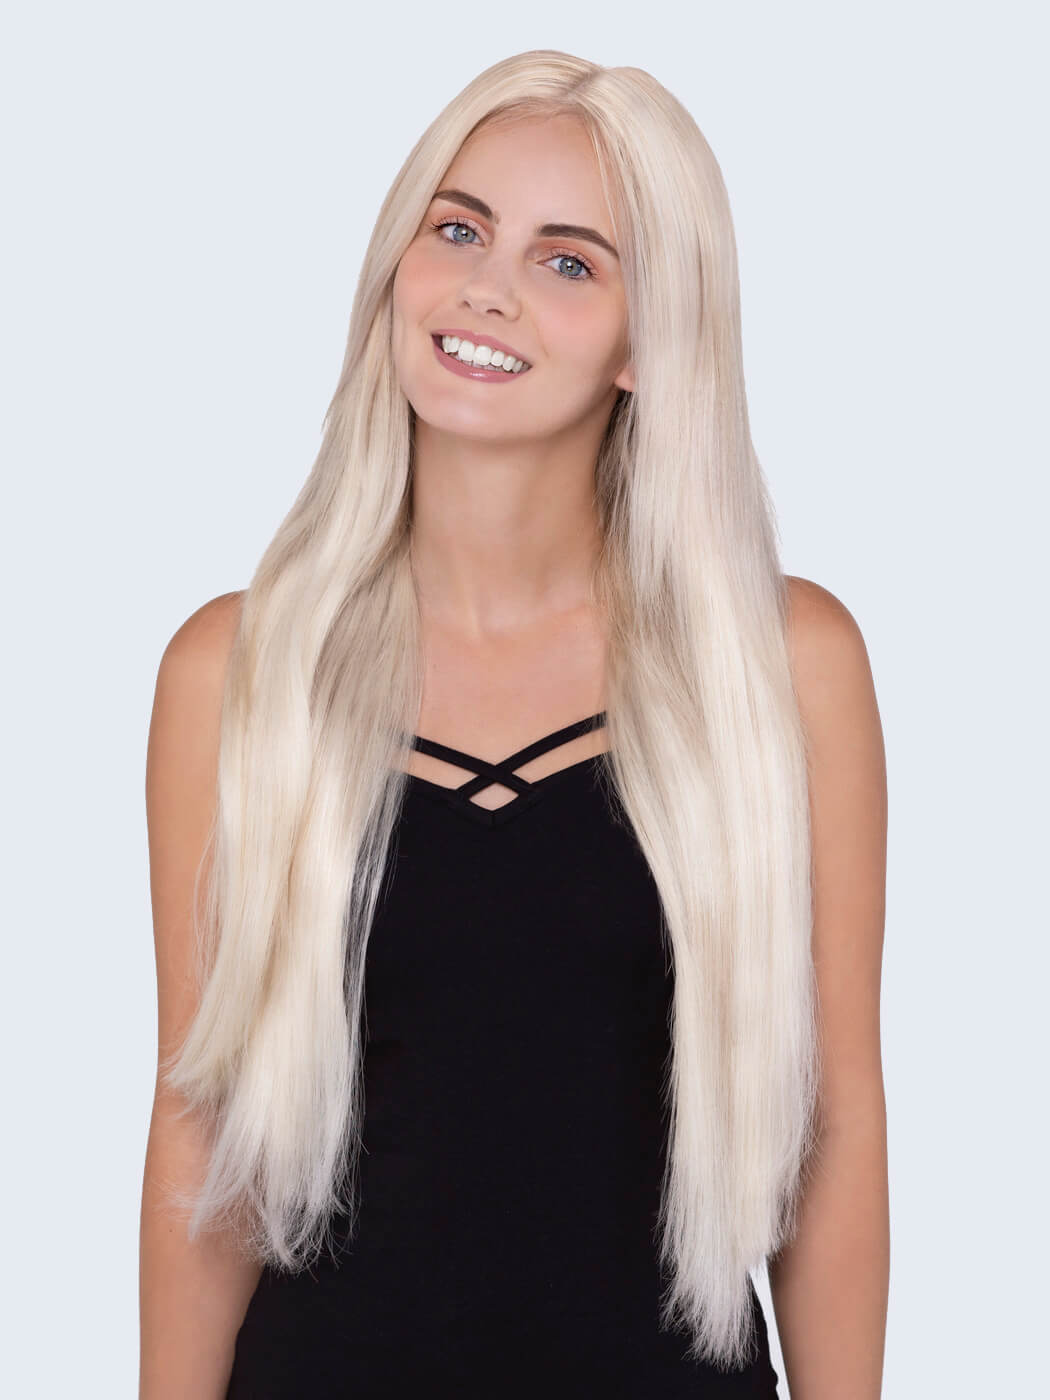 Hair Extensions For Regular Hair | Platinum Blonde | Clip In Hair| 20 Inch Hair Extensions | Remy Clip In Hair Extensions